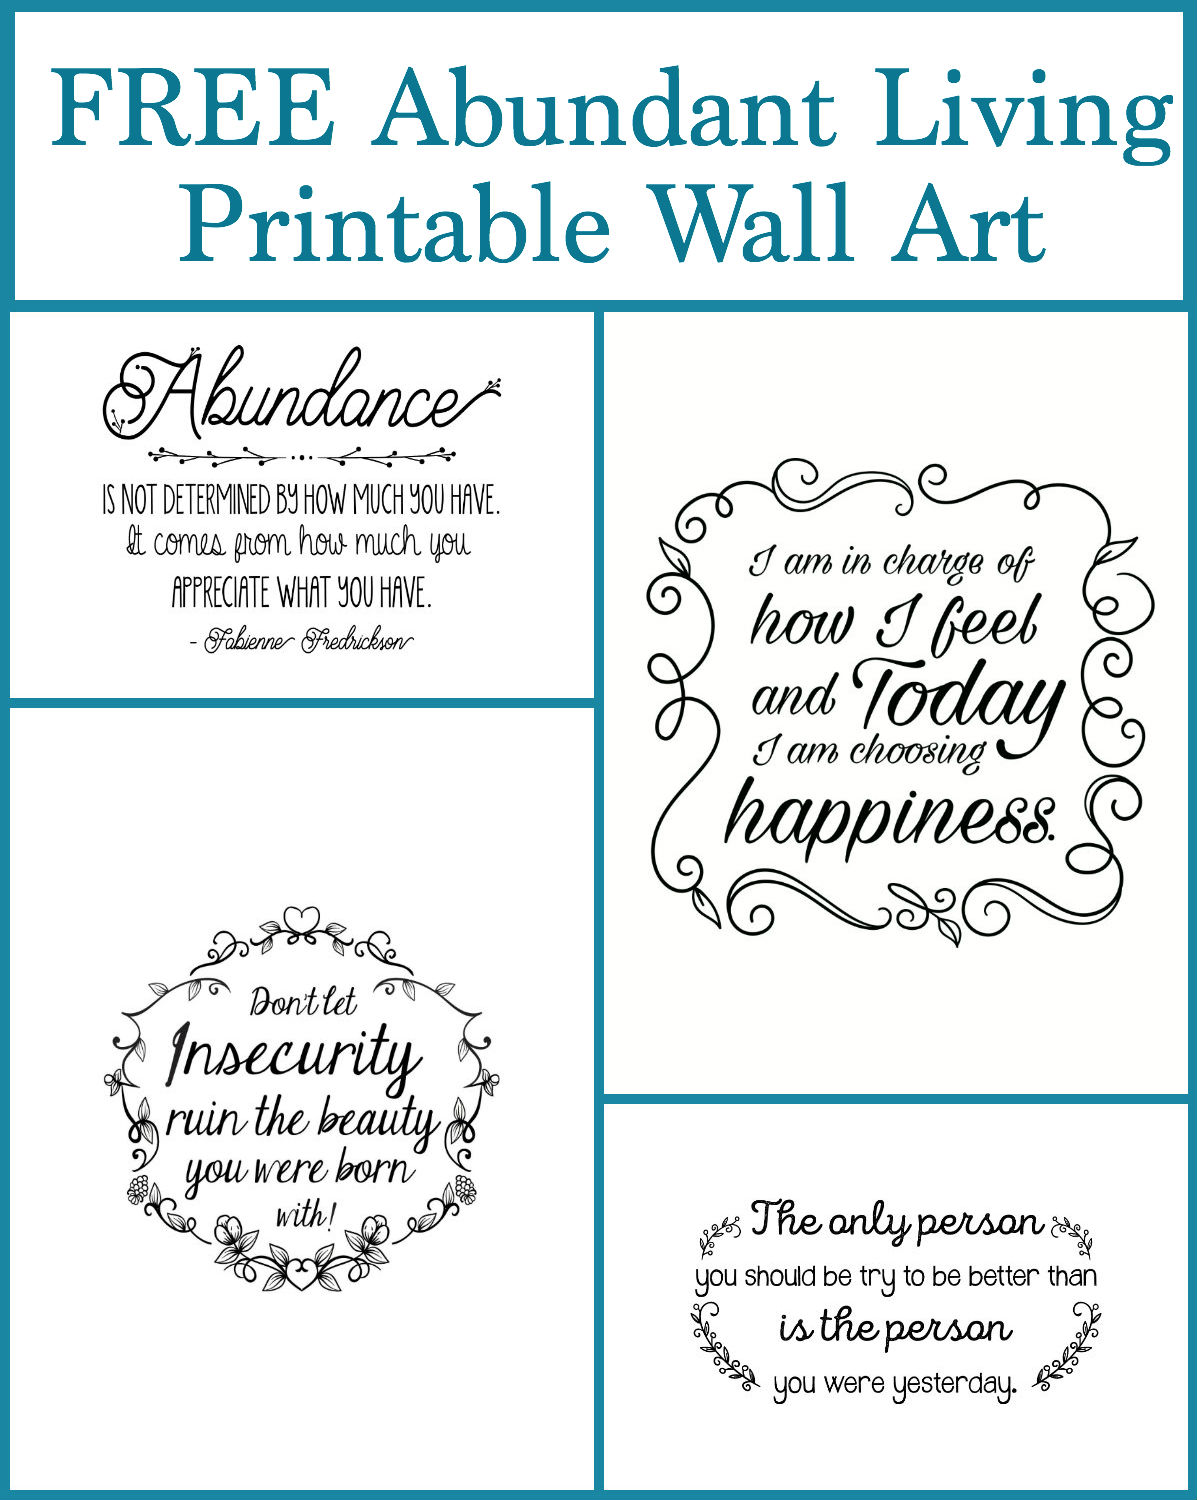 Even through the ups and downs of life I'm learning that it is possible to live a life of abundance. I hope these inspirational quotes will give you a bit of daily motivation! Please stop by and snag these 4 free pieces of abundant living, printable wall art.